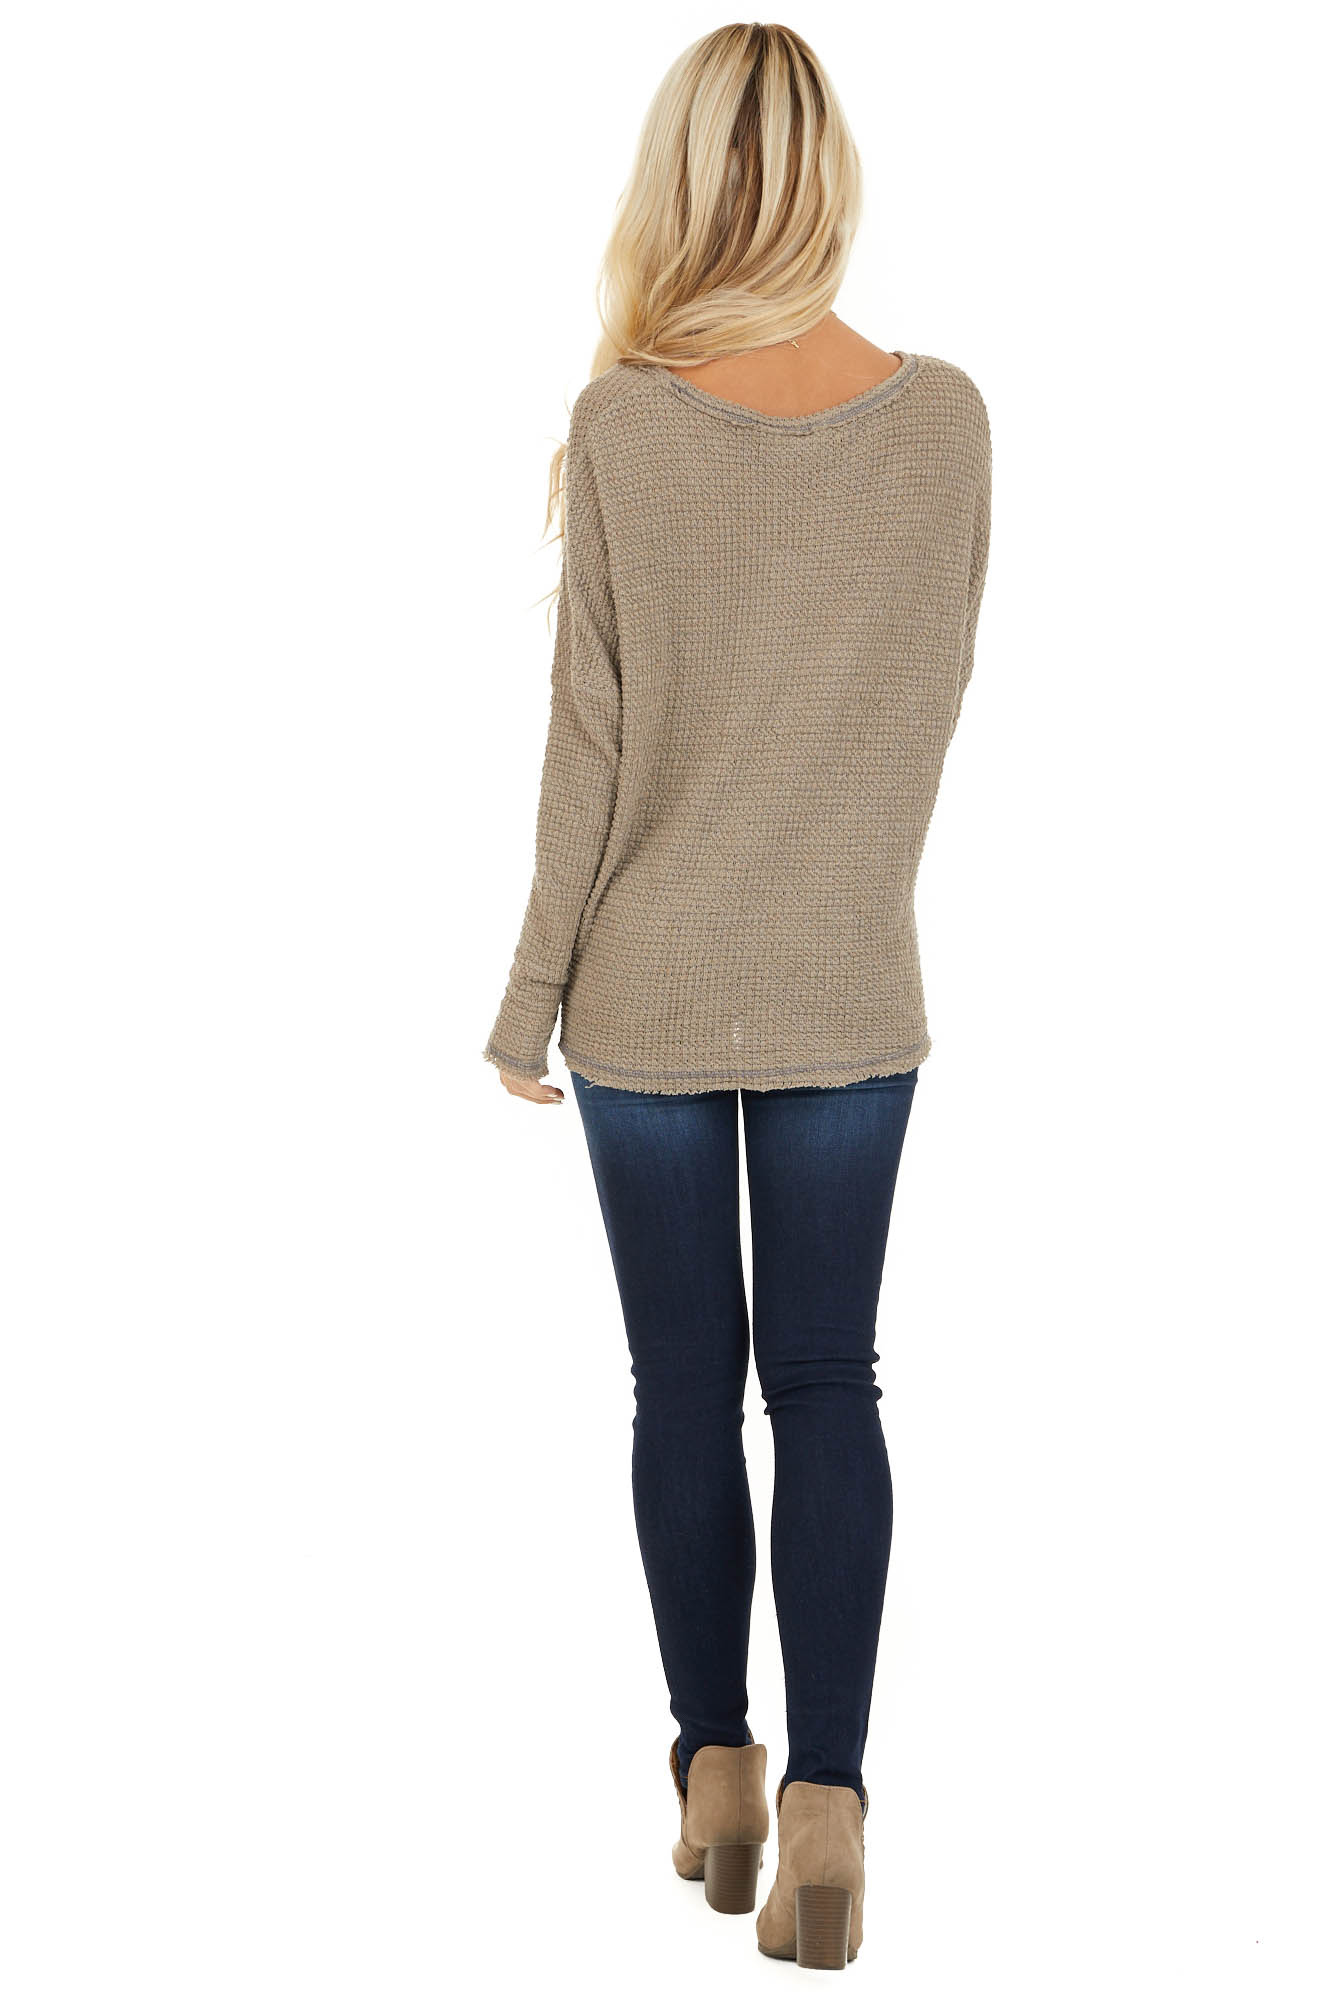 Taupe Long Sleeve Waffle Knit Top with Front Twist Detail back full body